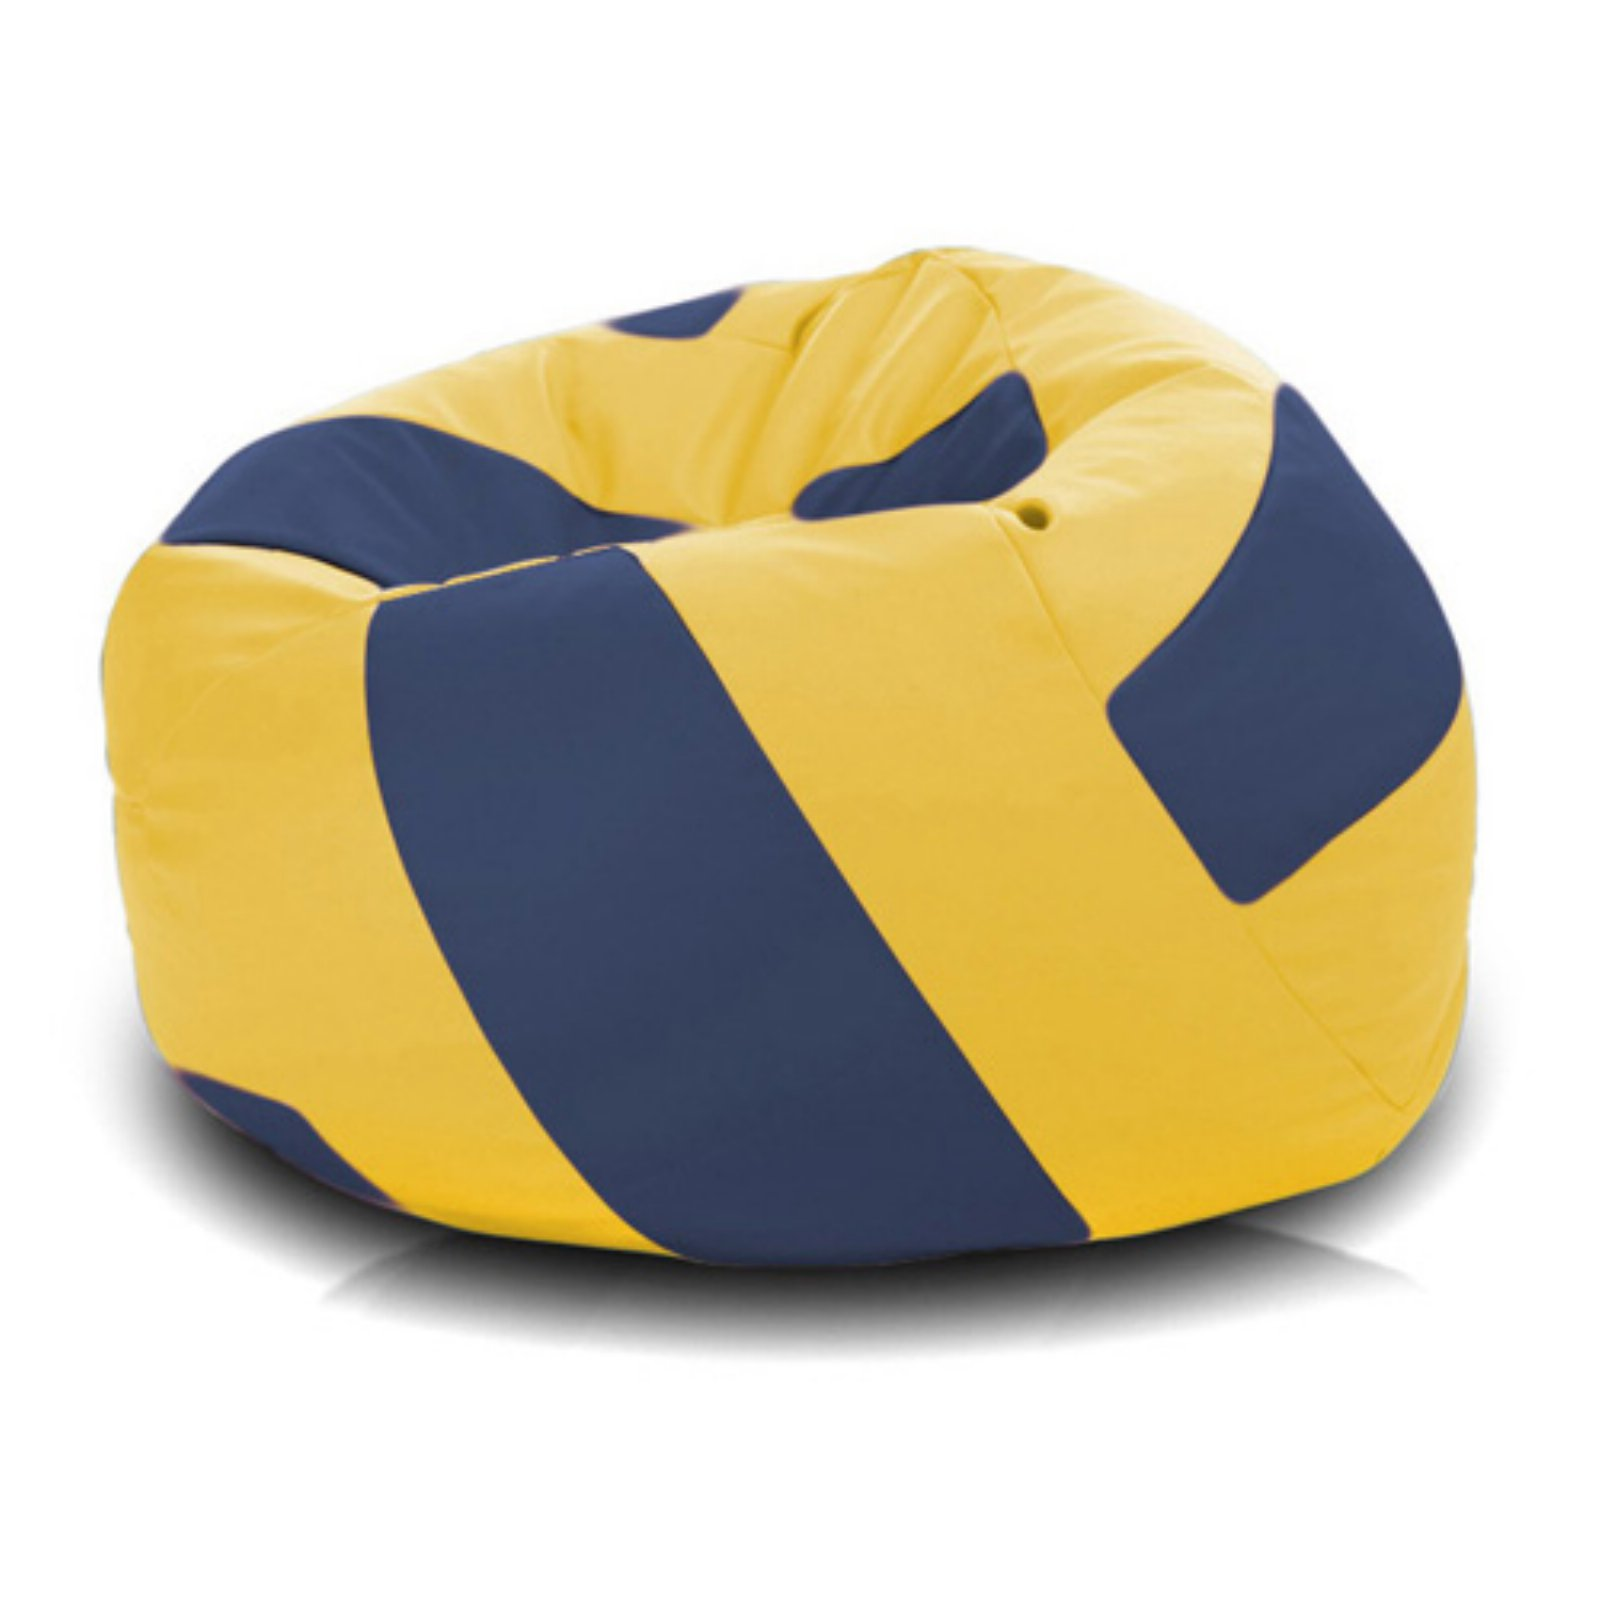 Turbo Beanbags Volleyball Style Large Bean Bag Chair   Walmart.com